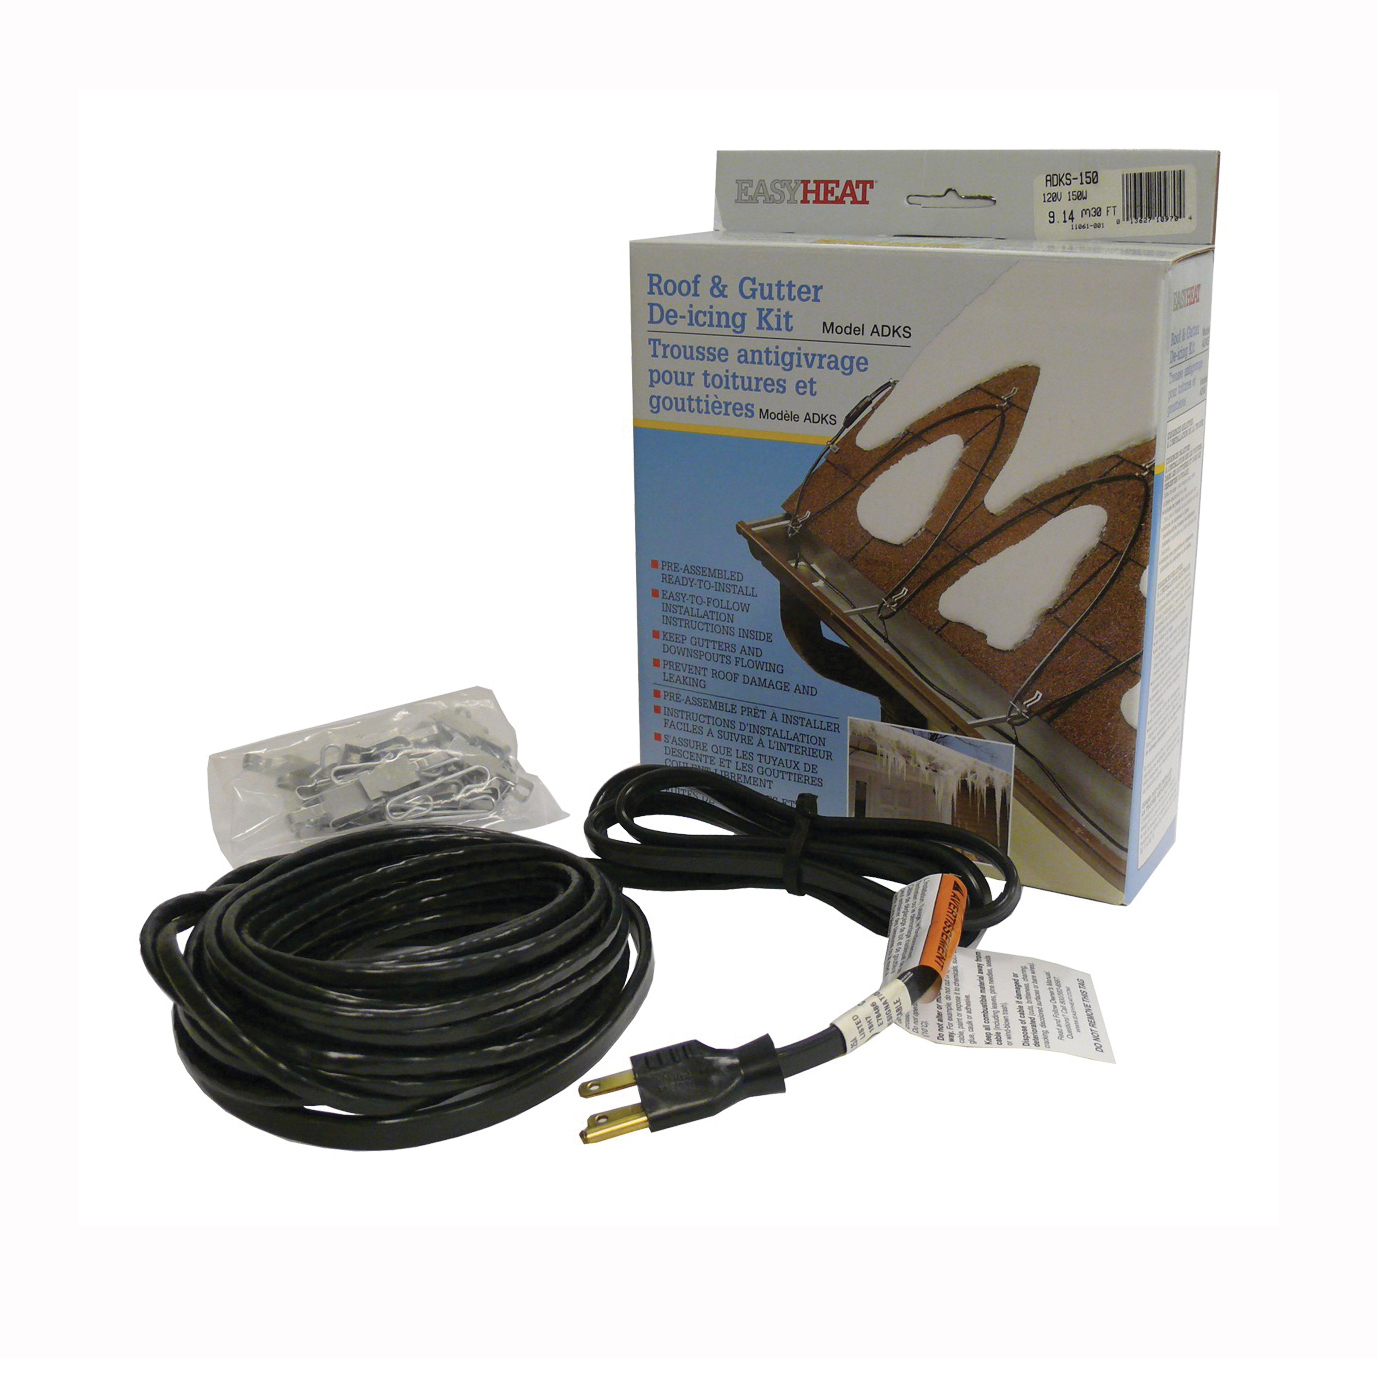 Picture of EasyHeat ADKS Series ADKS600 Roof and Gutter De-Icing Cable, 120 ft L, 120 V, 600 W